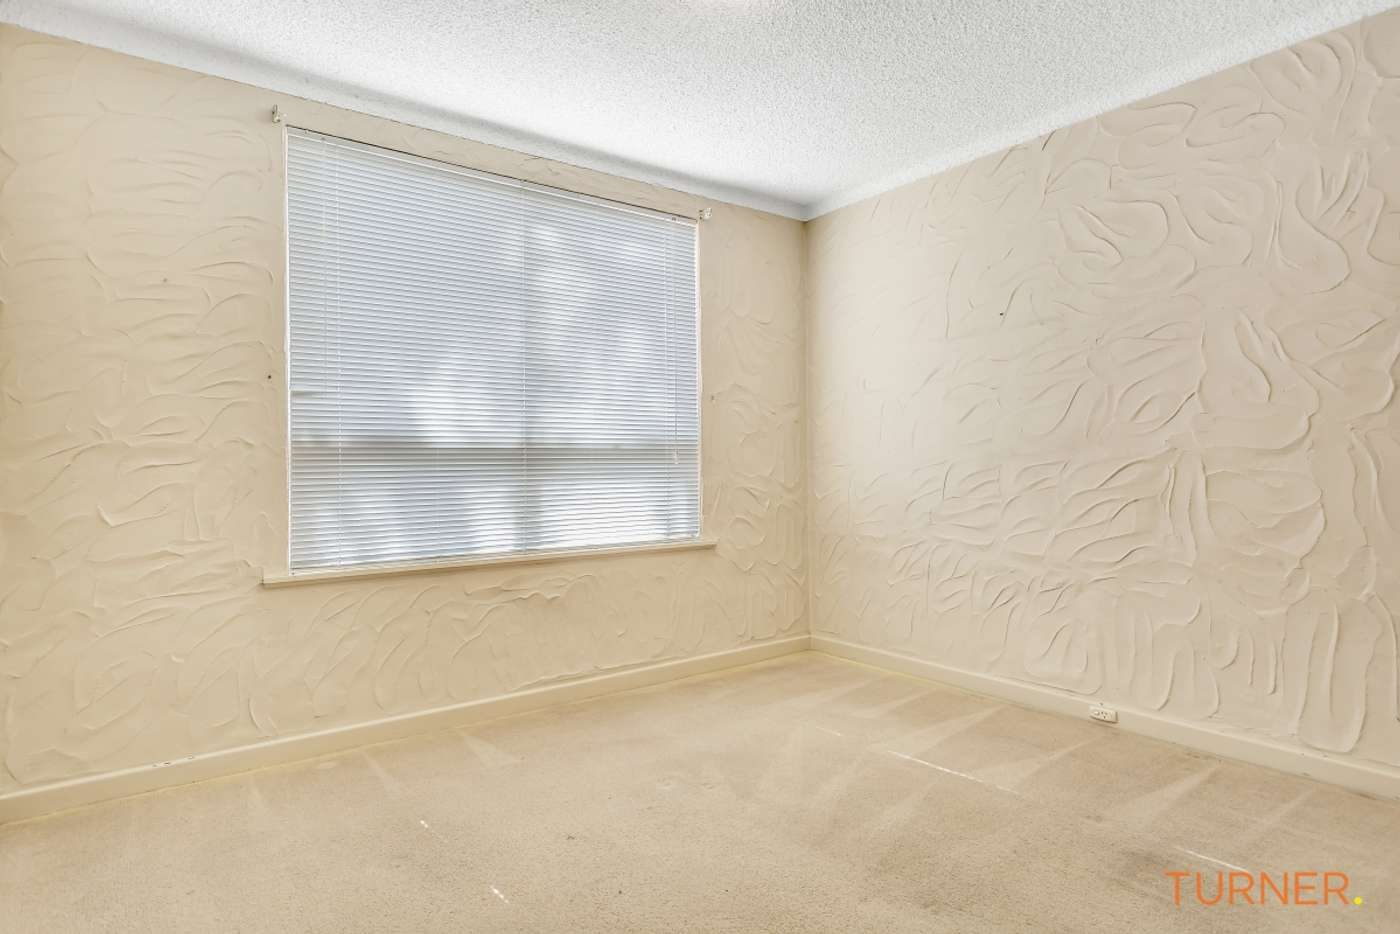 Fifth view of Homely unit listing, 5/35 Nile Street, Glenelg SA 5045